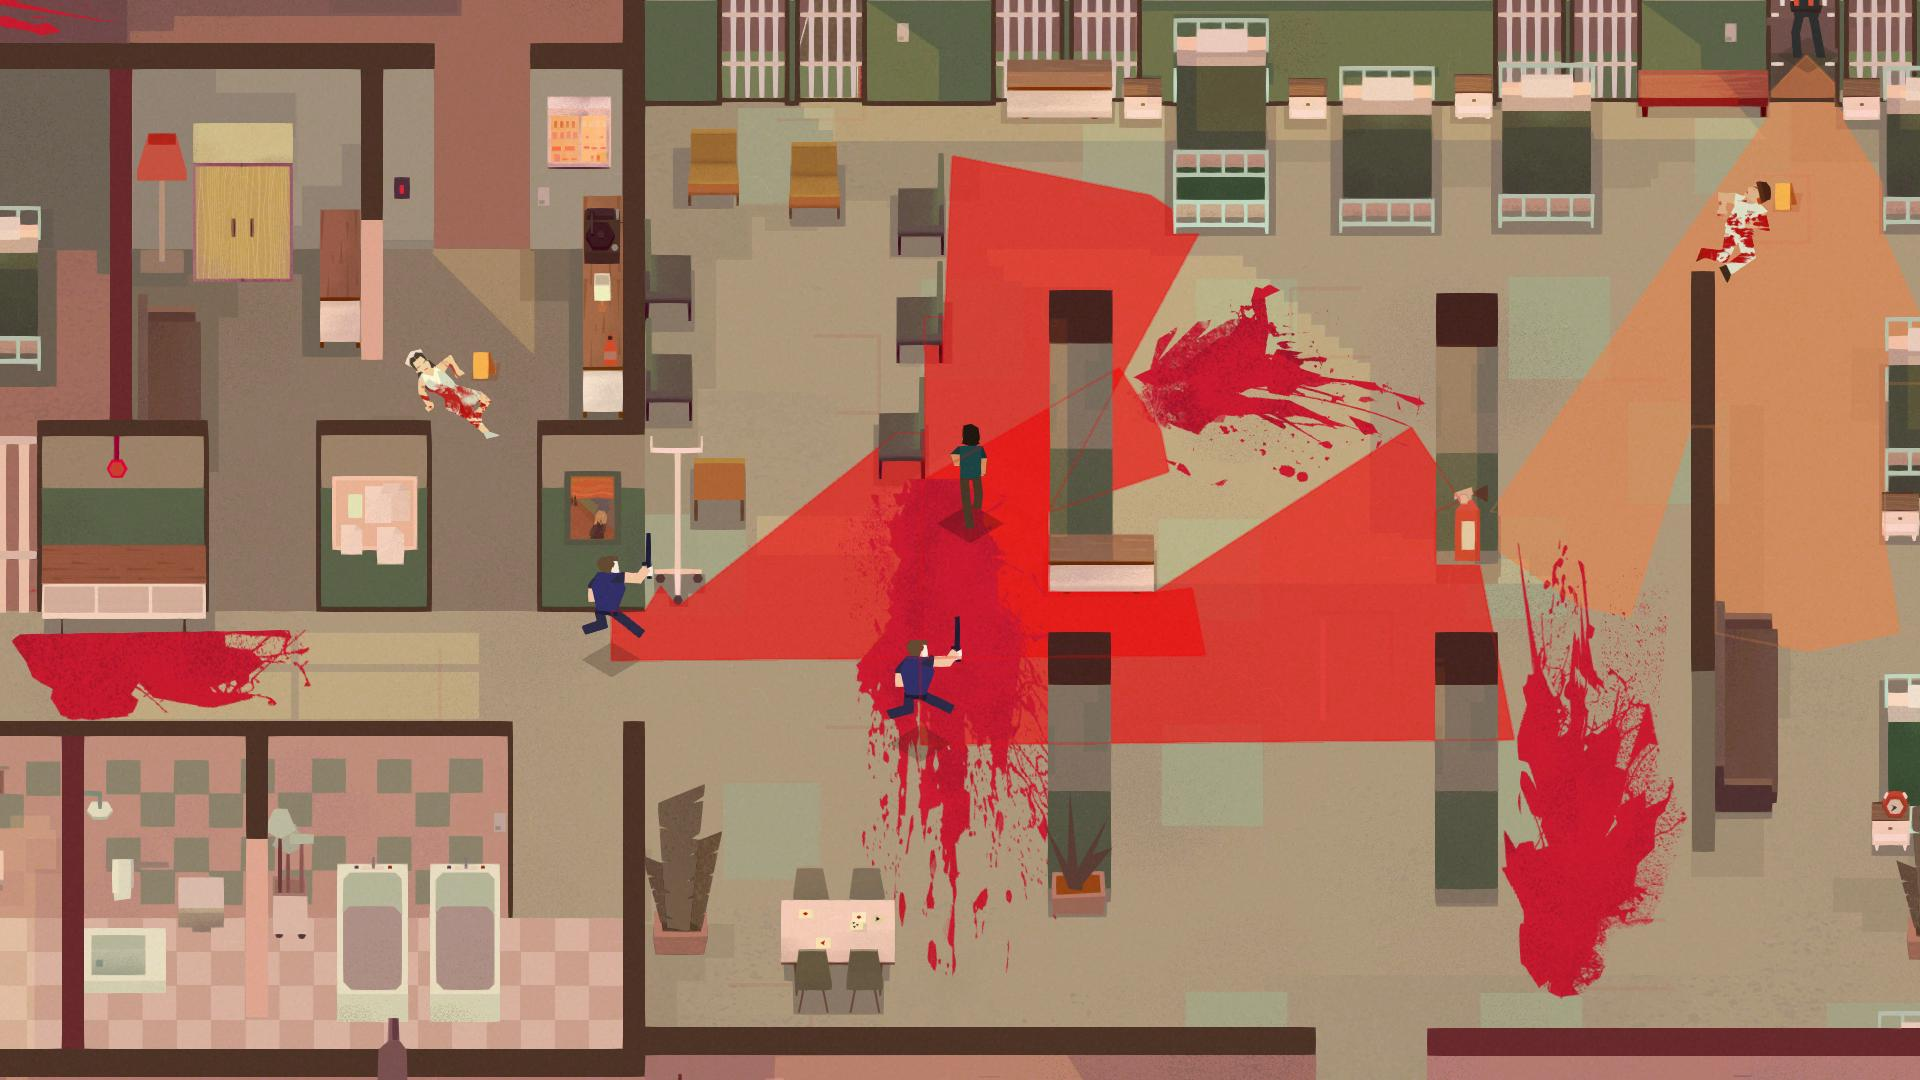 Serial Cleaner review - Destructoid